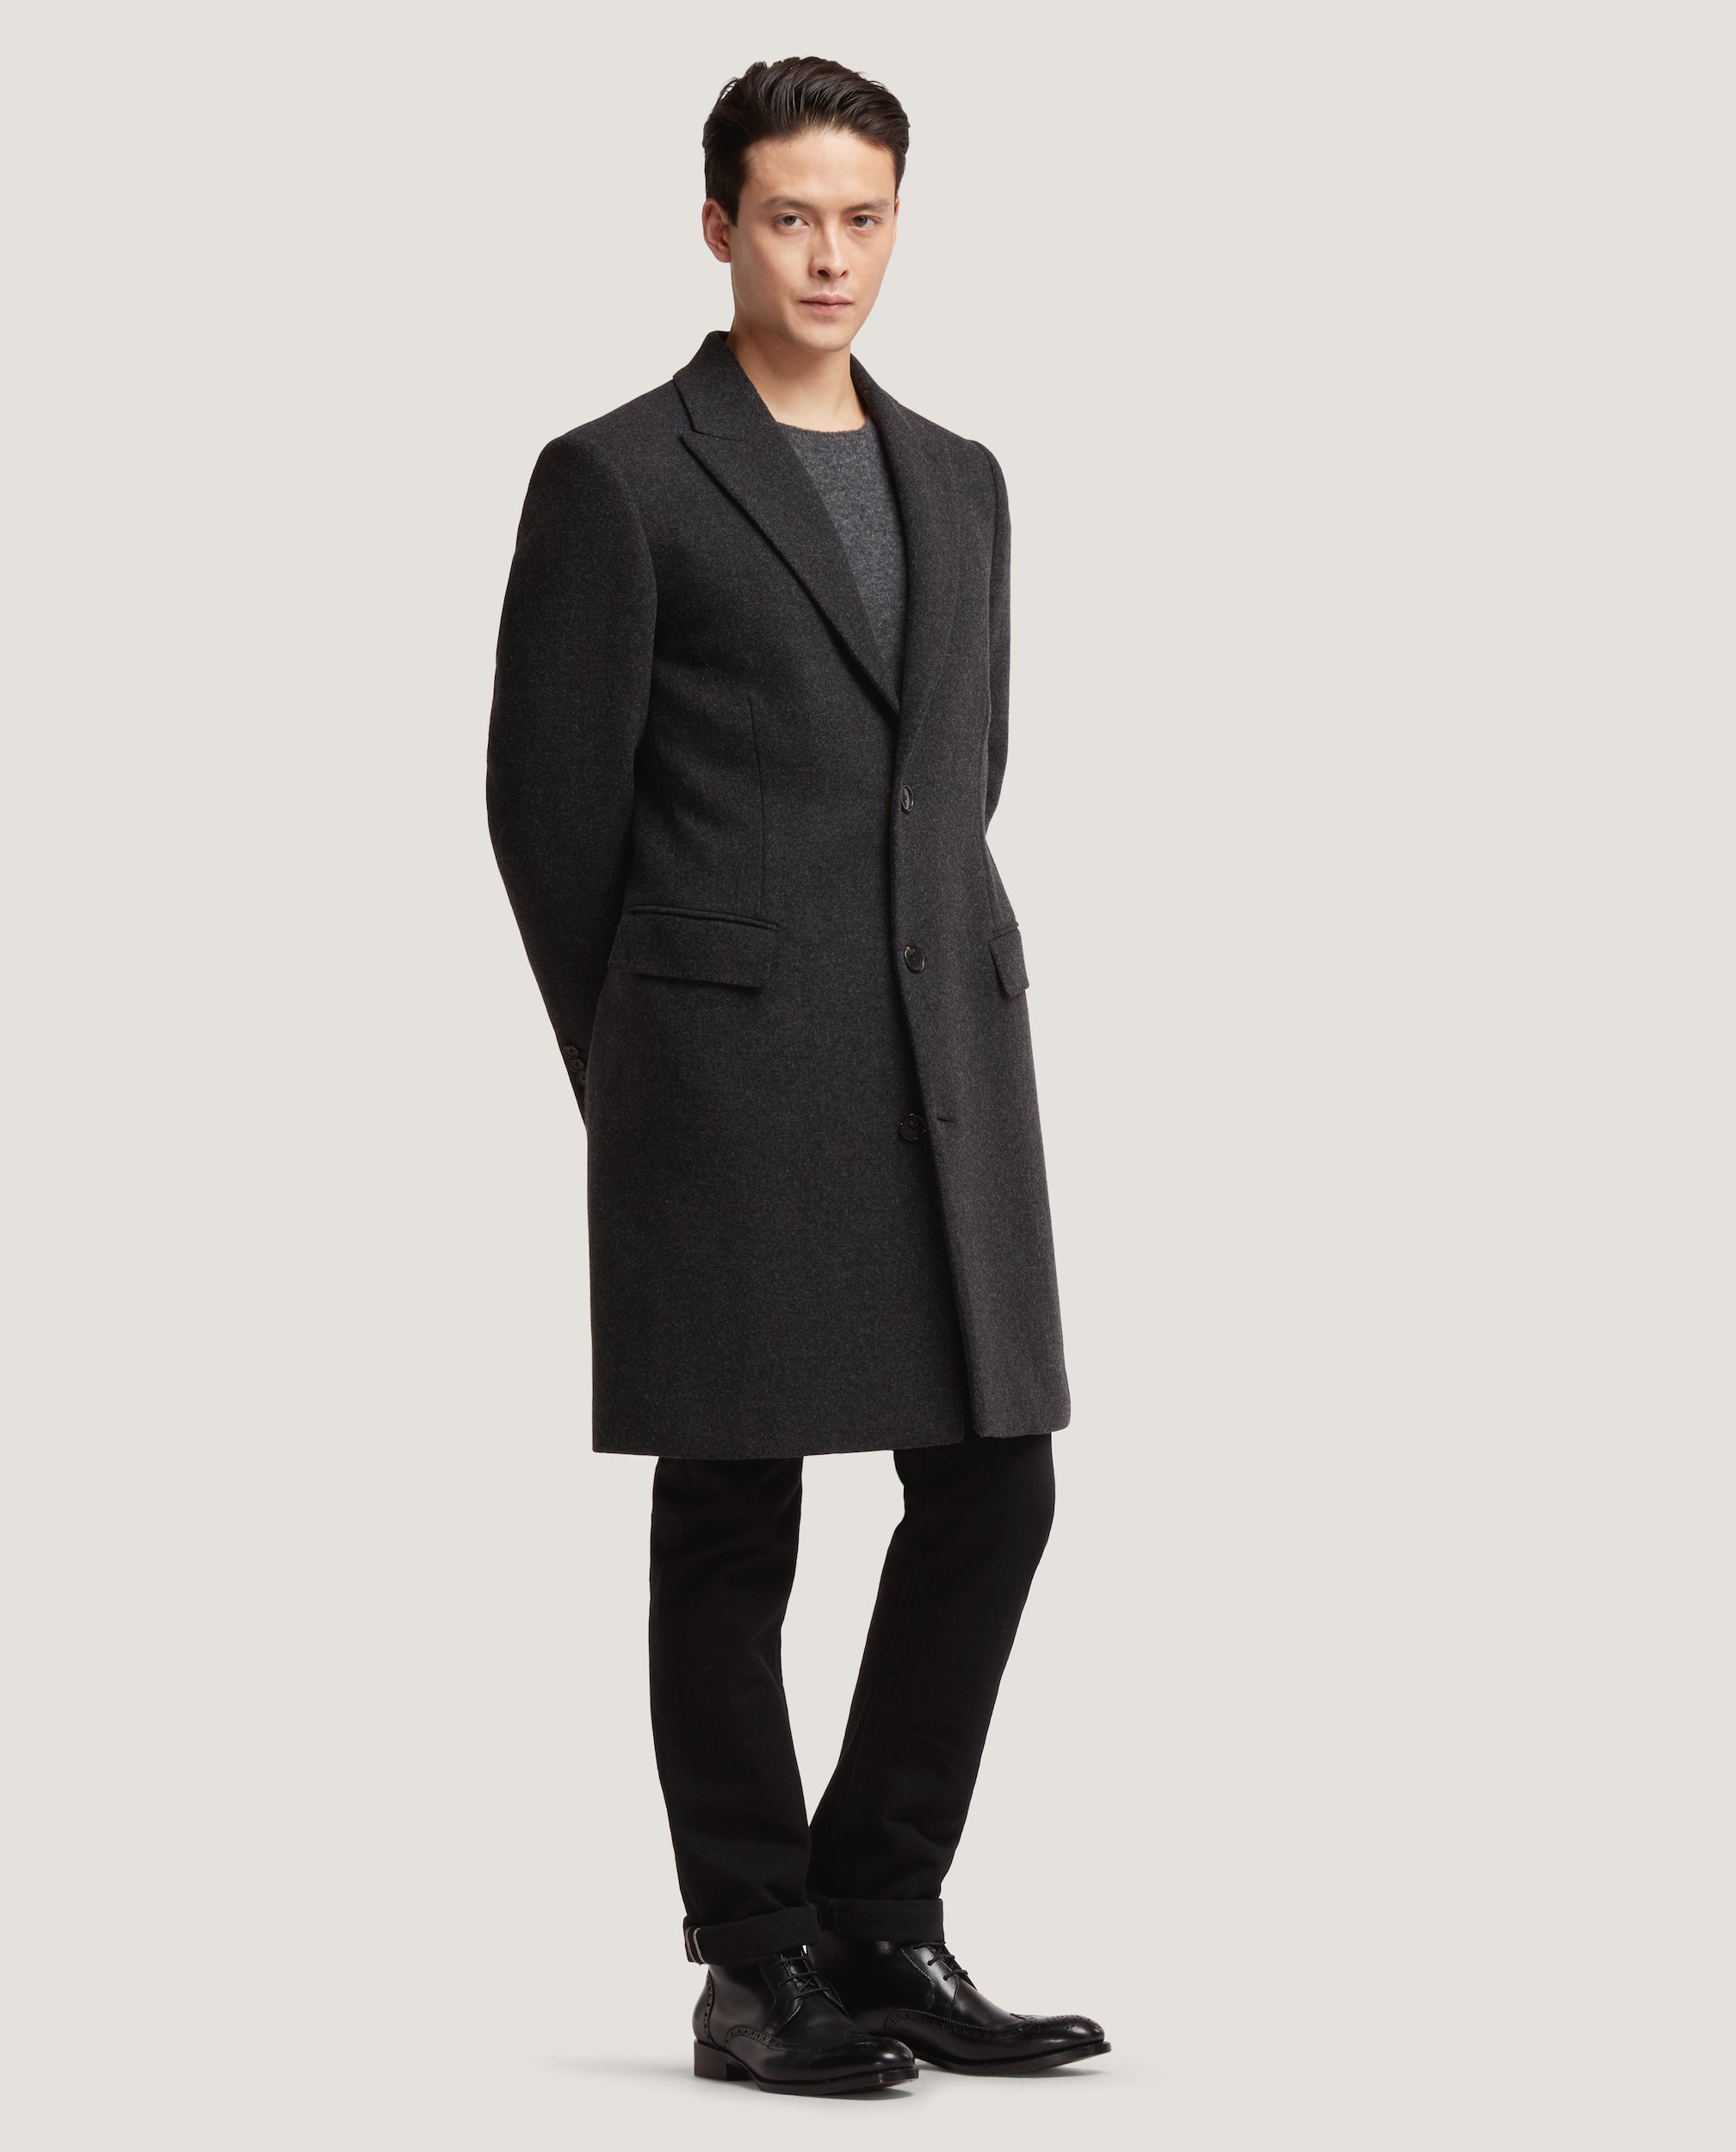 GILLES SINGLE BREASTED WOOL OVERCOAT by Salle Privée